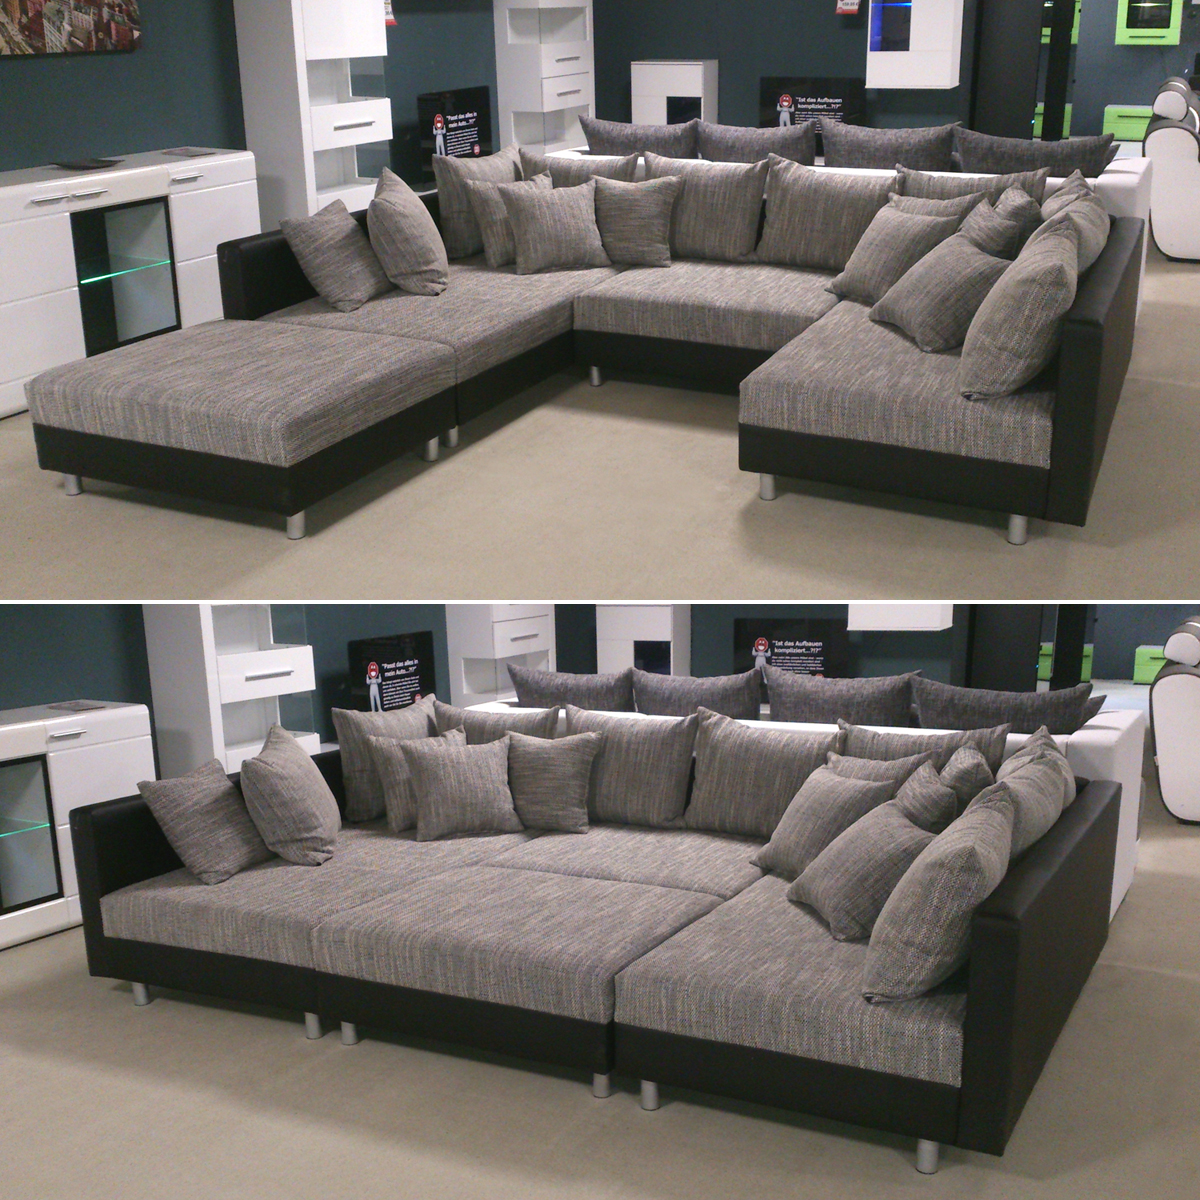 xxl sofa u form design sectional sofa matera xxl with led lights grey black ebay xxl sectional